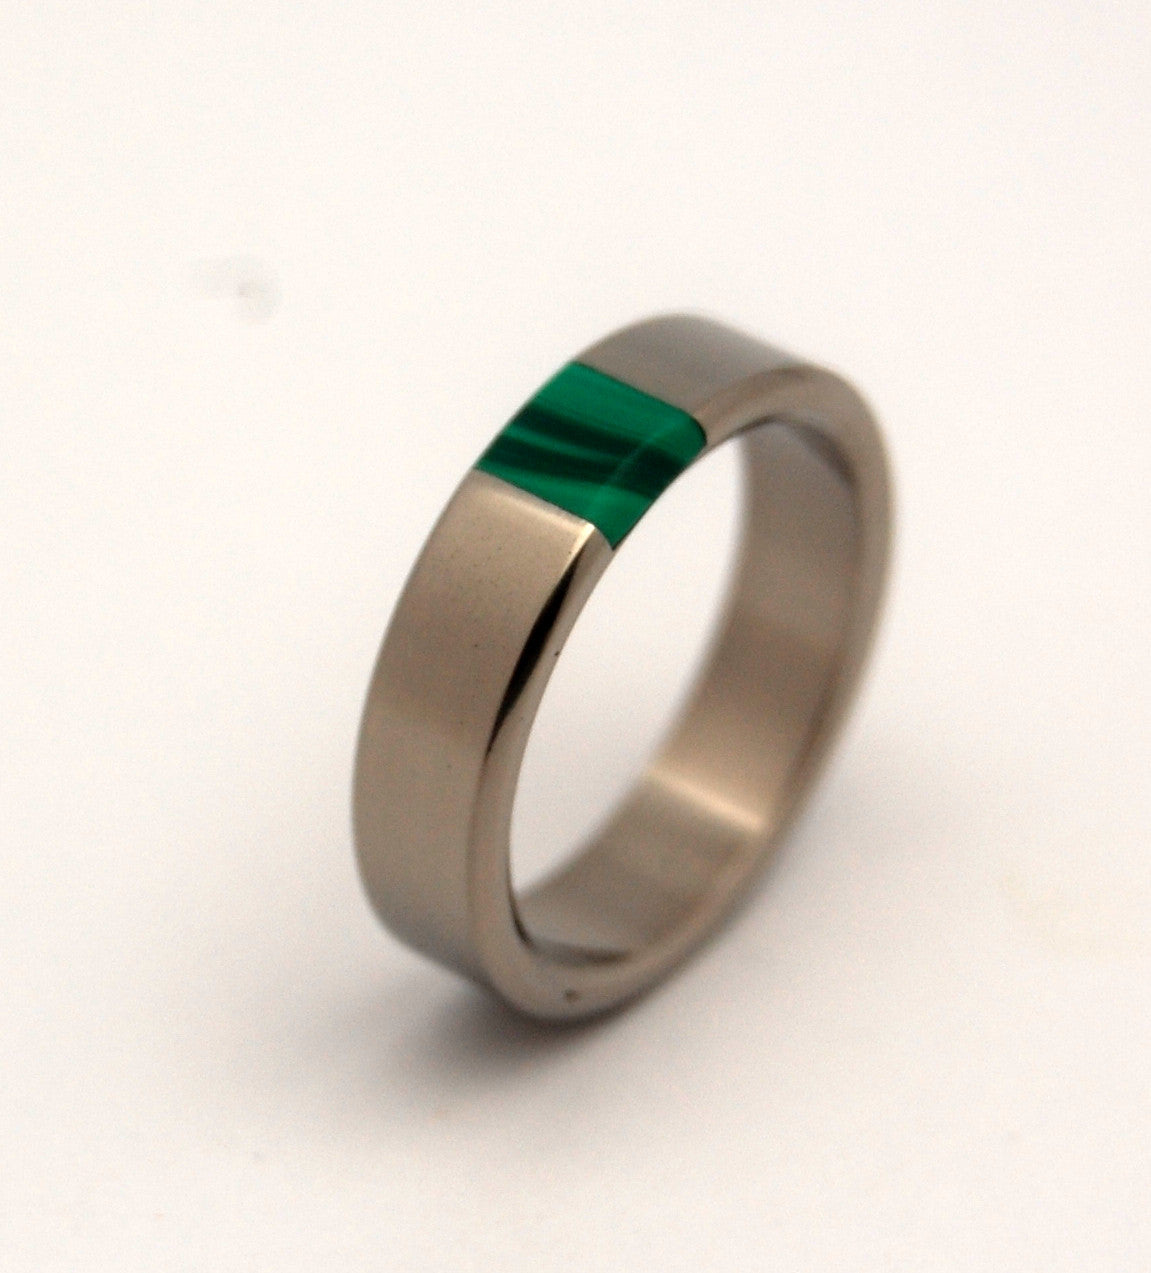 GREEN NECTAR | Jade Stone & Titanium - Unique Wedding Rings - Minter and Richter Designs